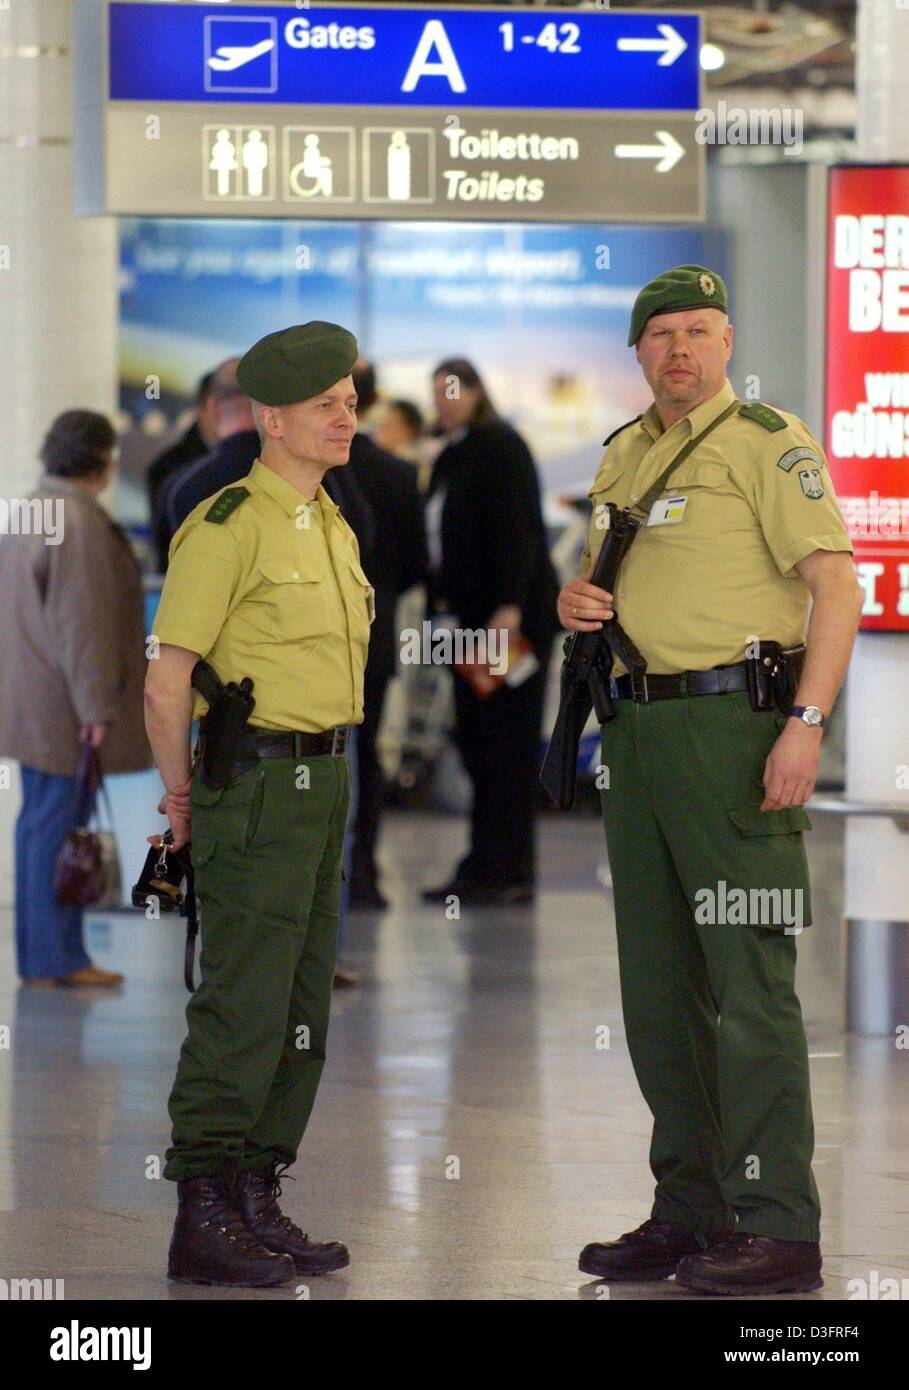 (dpa) - Armed officers of the German federal border guard patrol the passenger terminal of the international airport - Stock Image